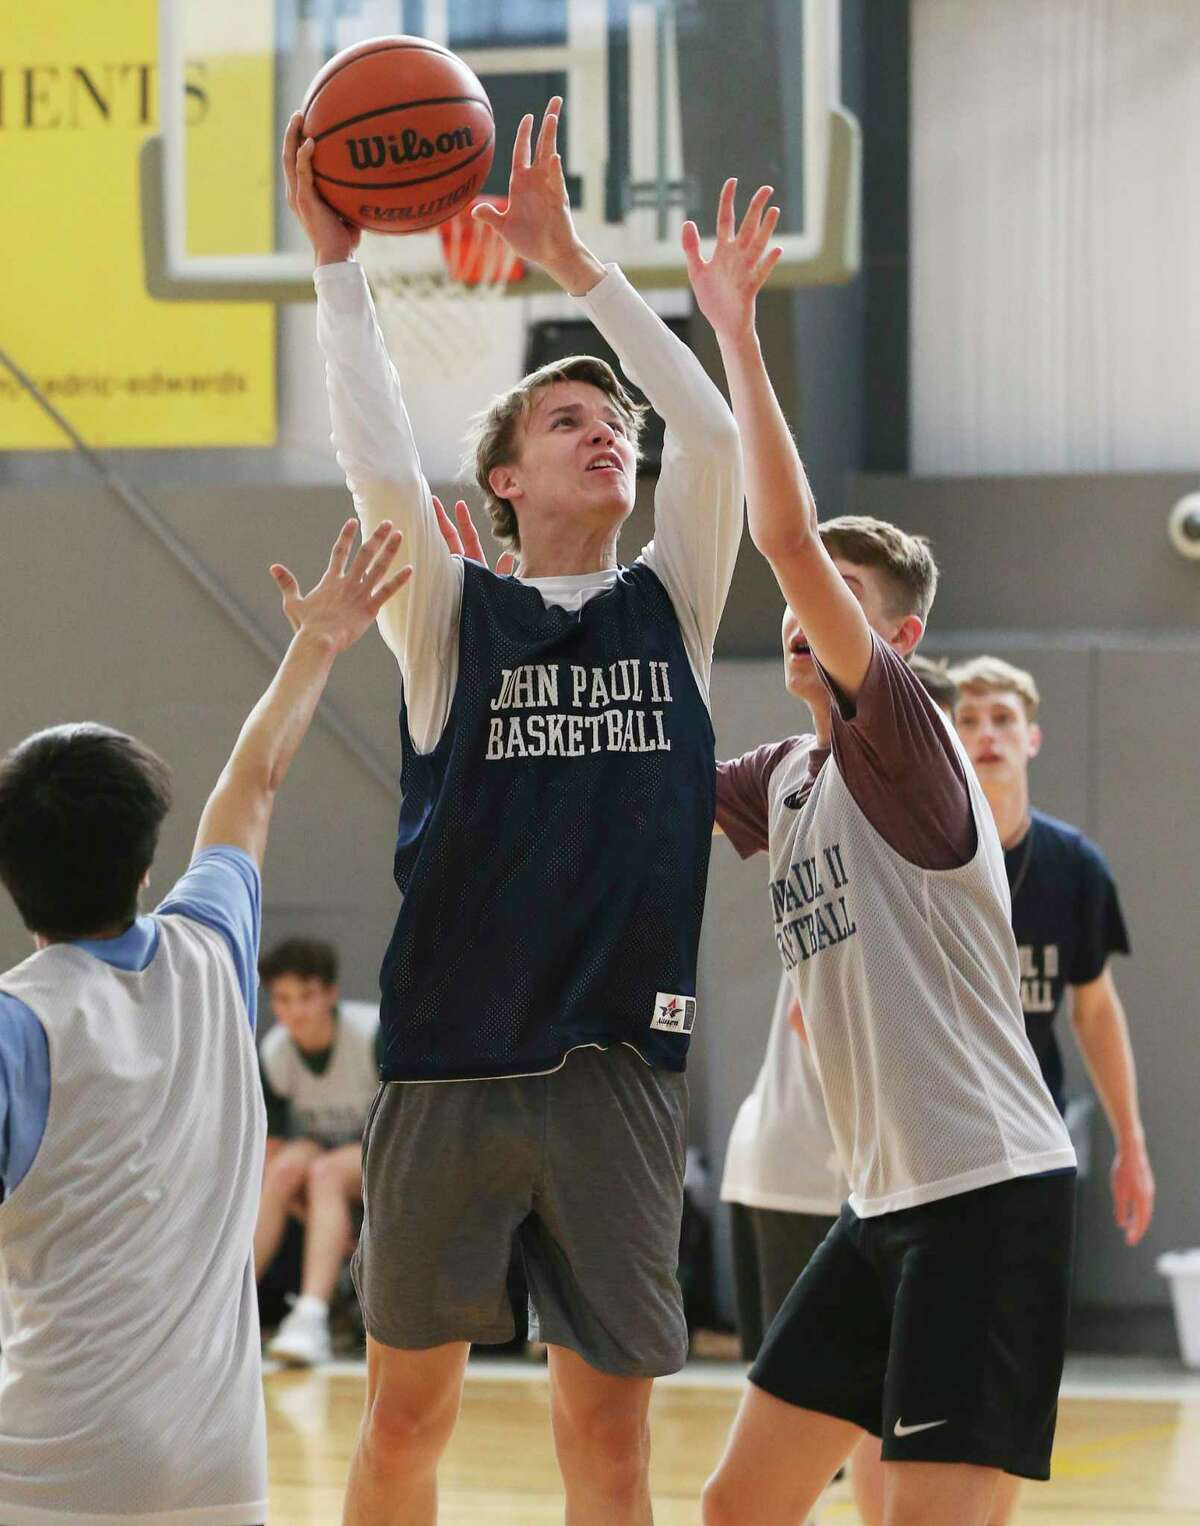 C.J. Kowalik (center) practices with the team on Wednesday, Feb. 26, 2020. The St. John Paul II Catholic High School men's basketball team is making its TAPPS state-tournament debut on Friday.